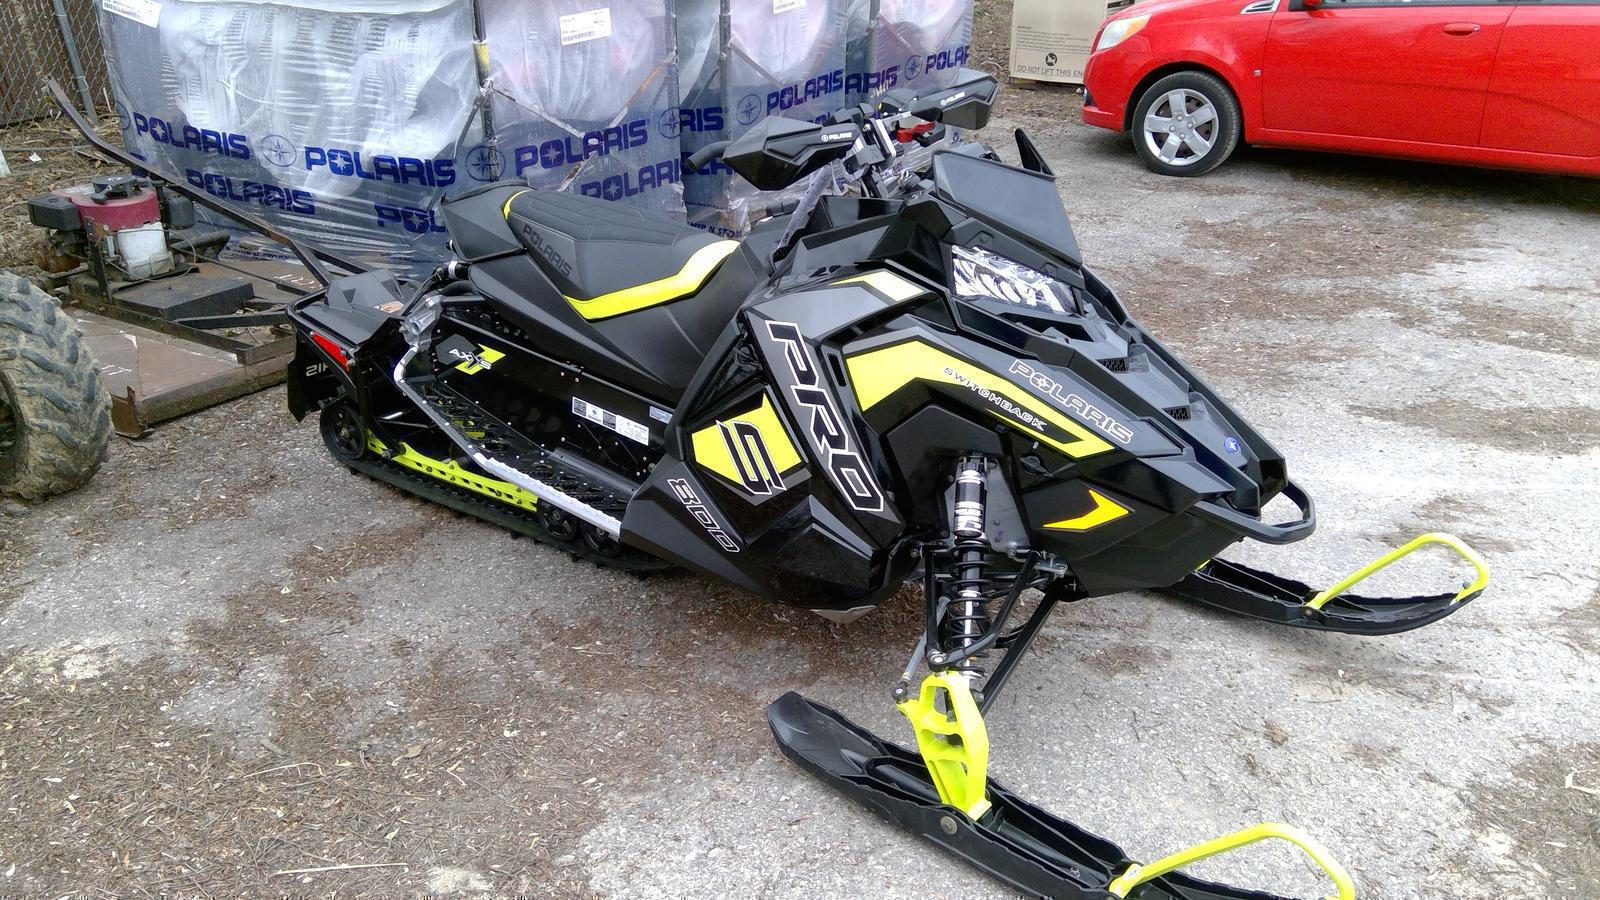 Black Pro S Snowmobile From Polaris Industries Quam S Marine Motor Sports